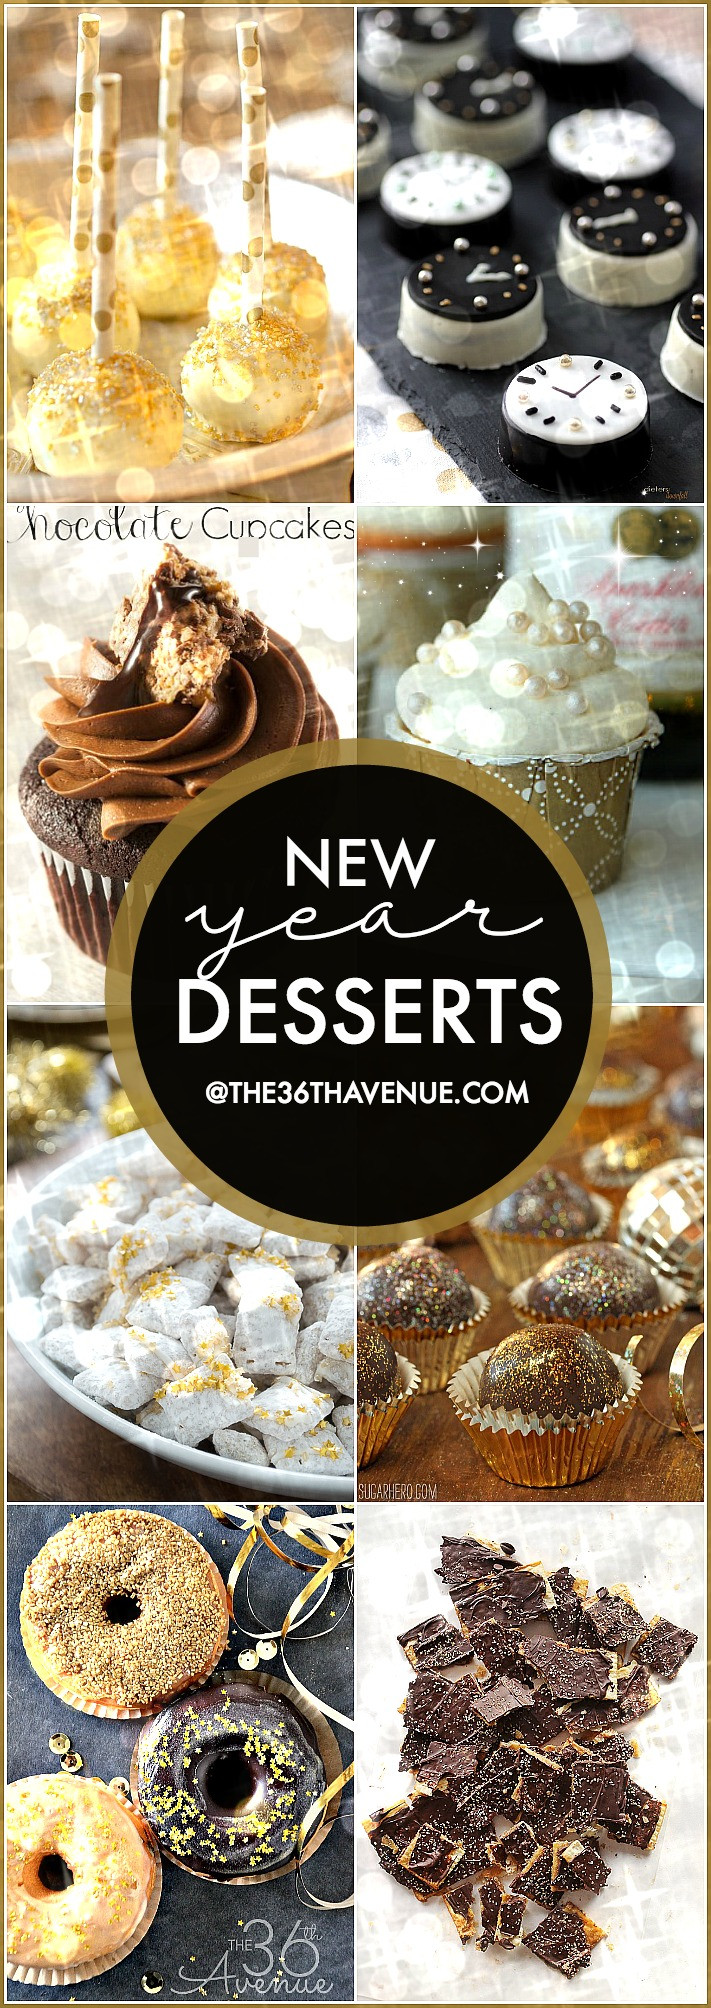 New Year Eve Dessert Recipes  New Year Desserts The 36th AVENUE